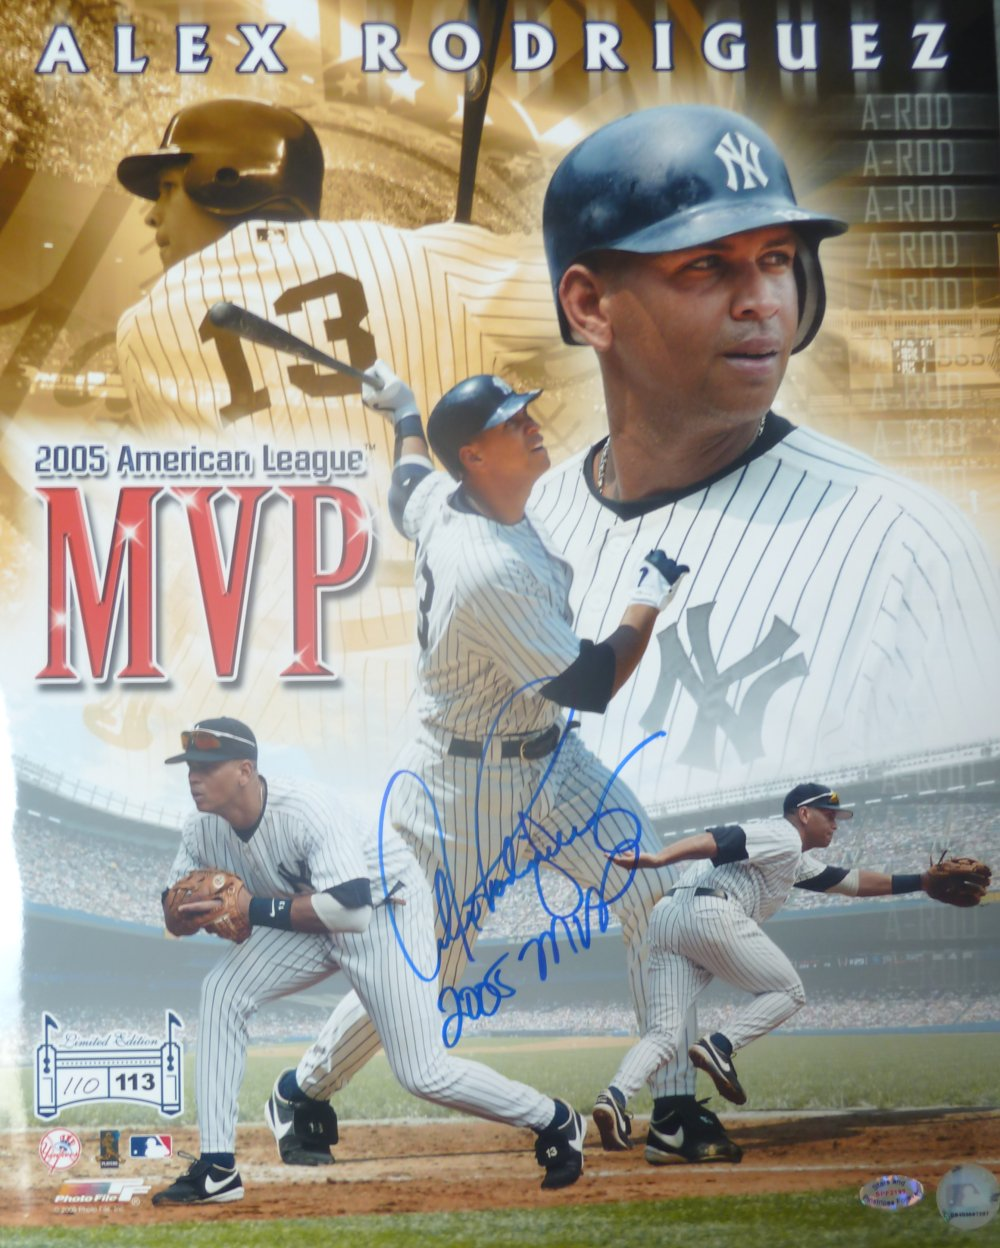 Image result for arod 2005 mvp images